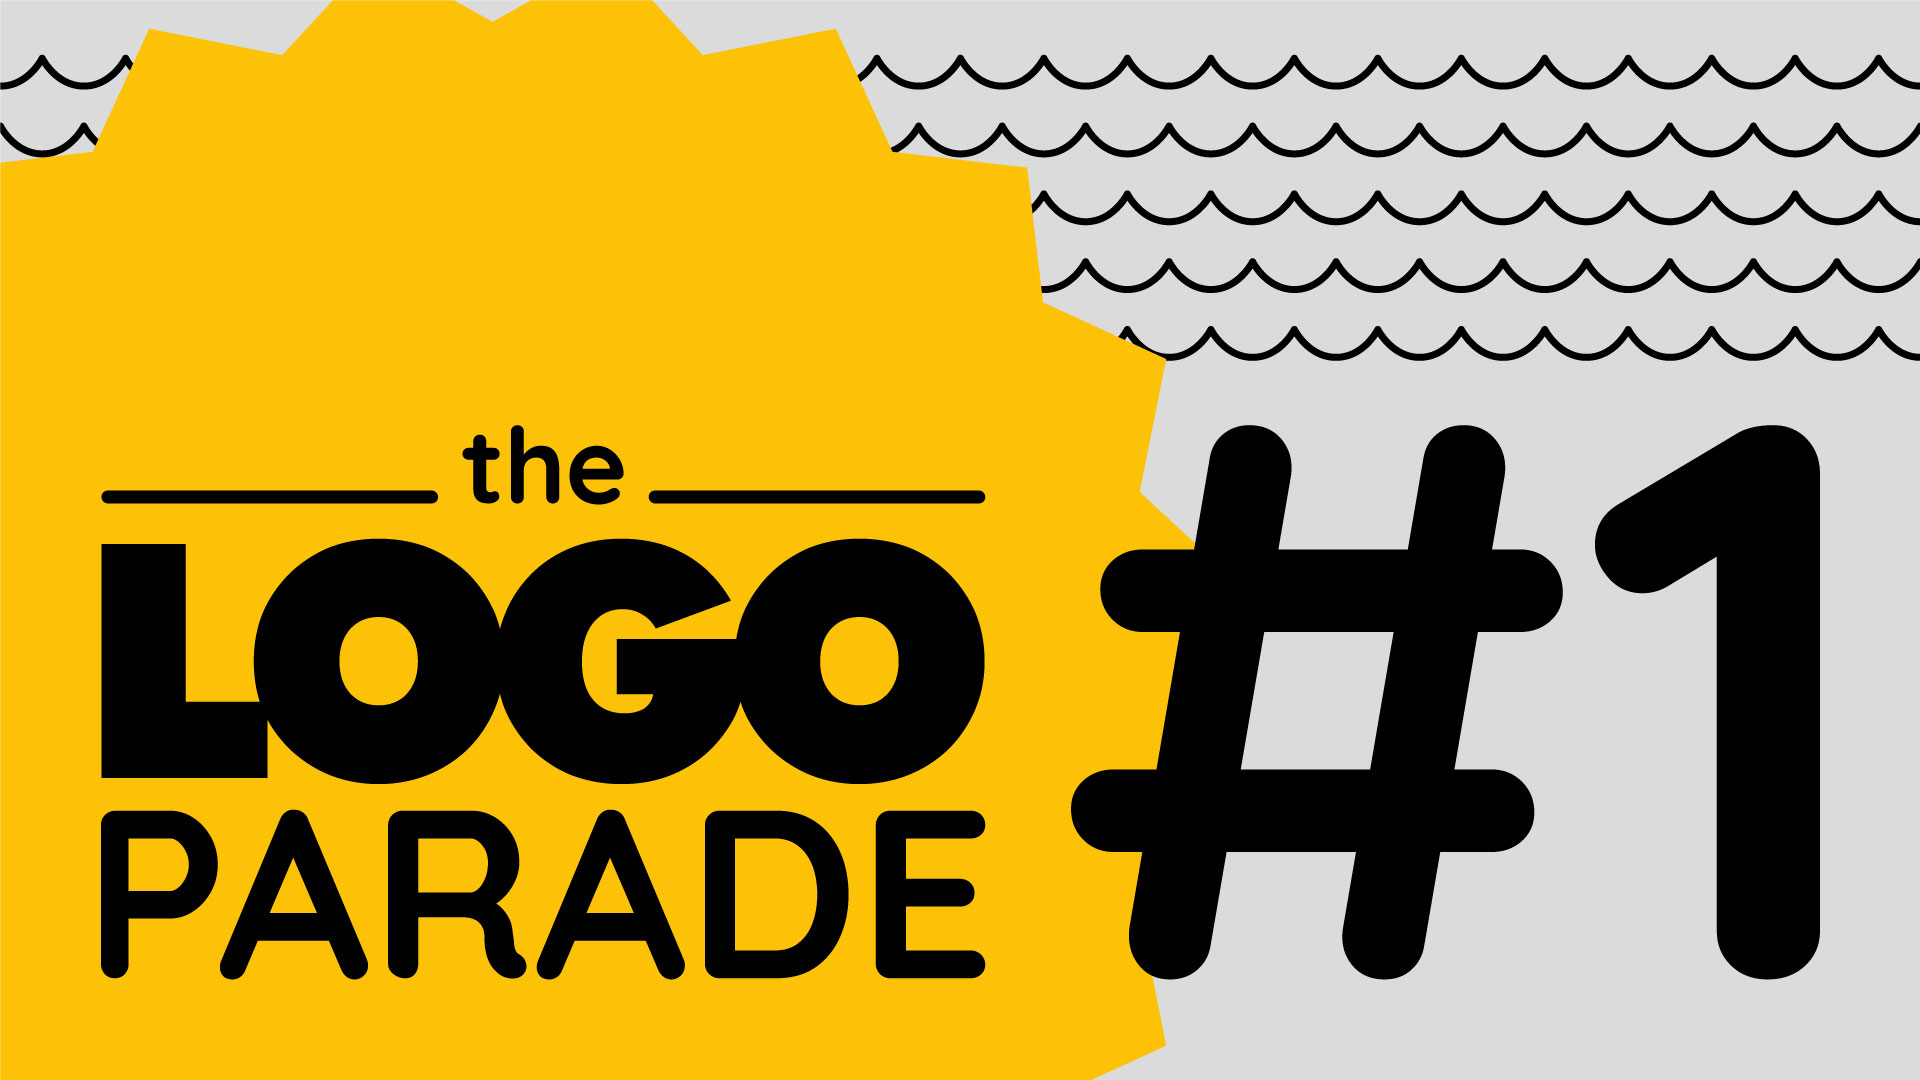 The Logo Parade #1